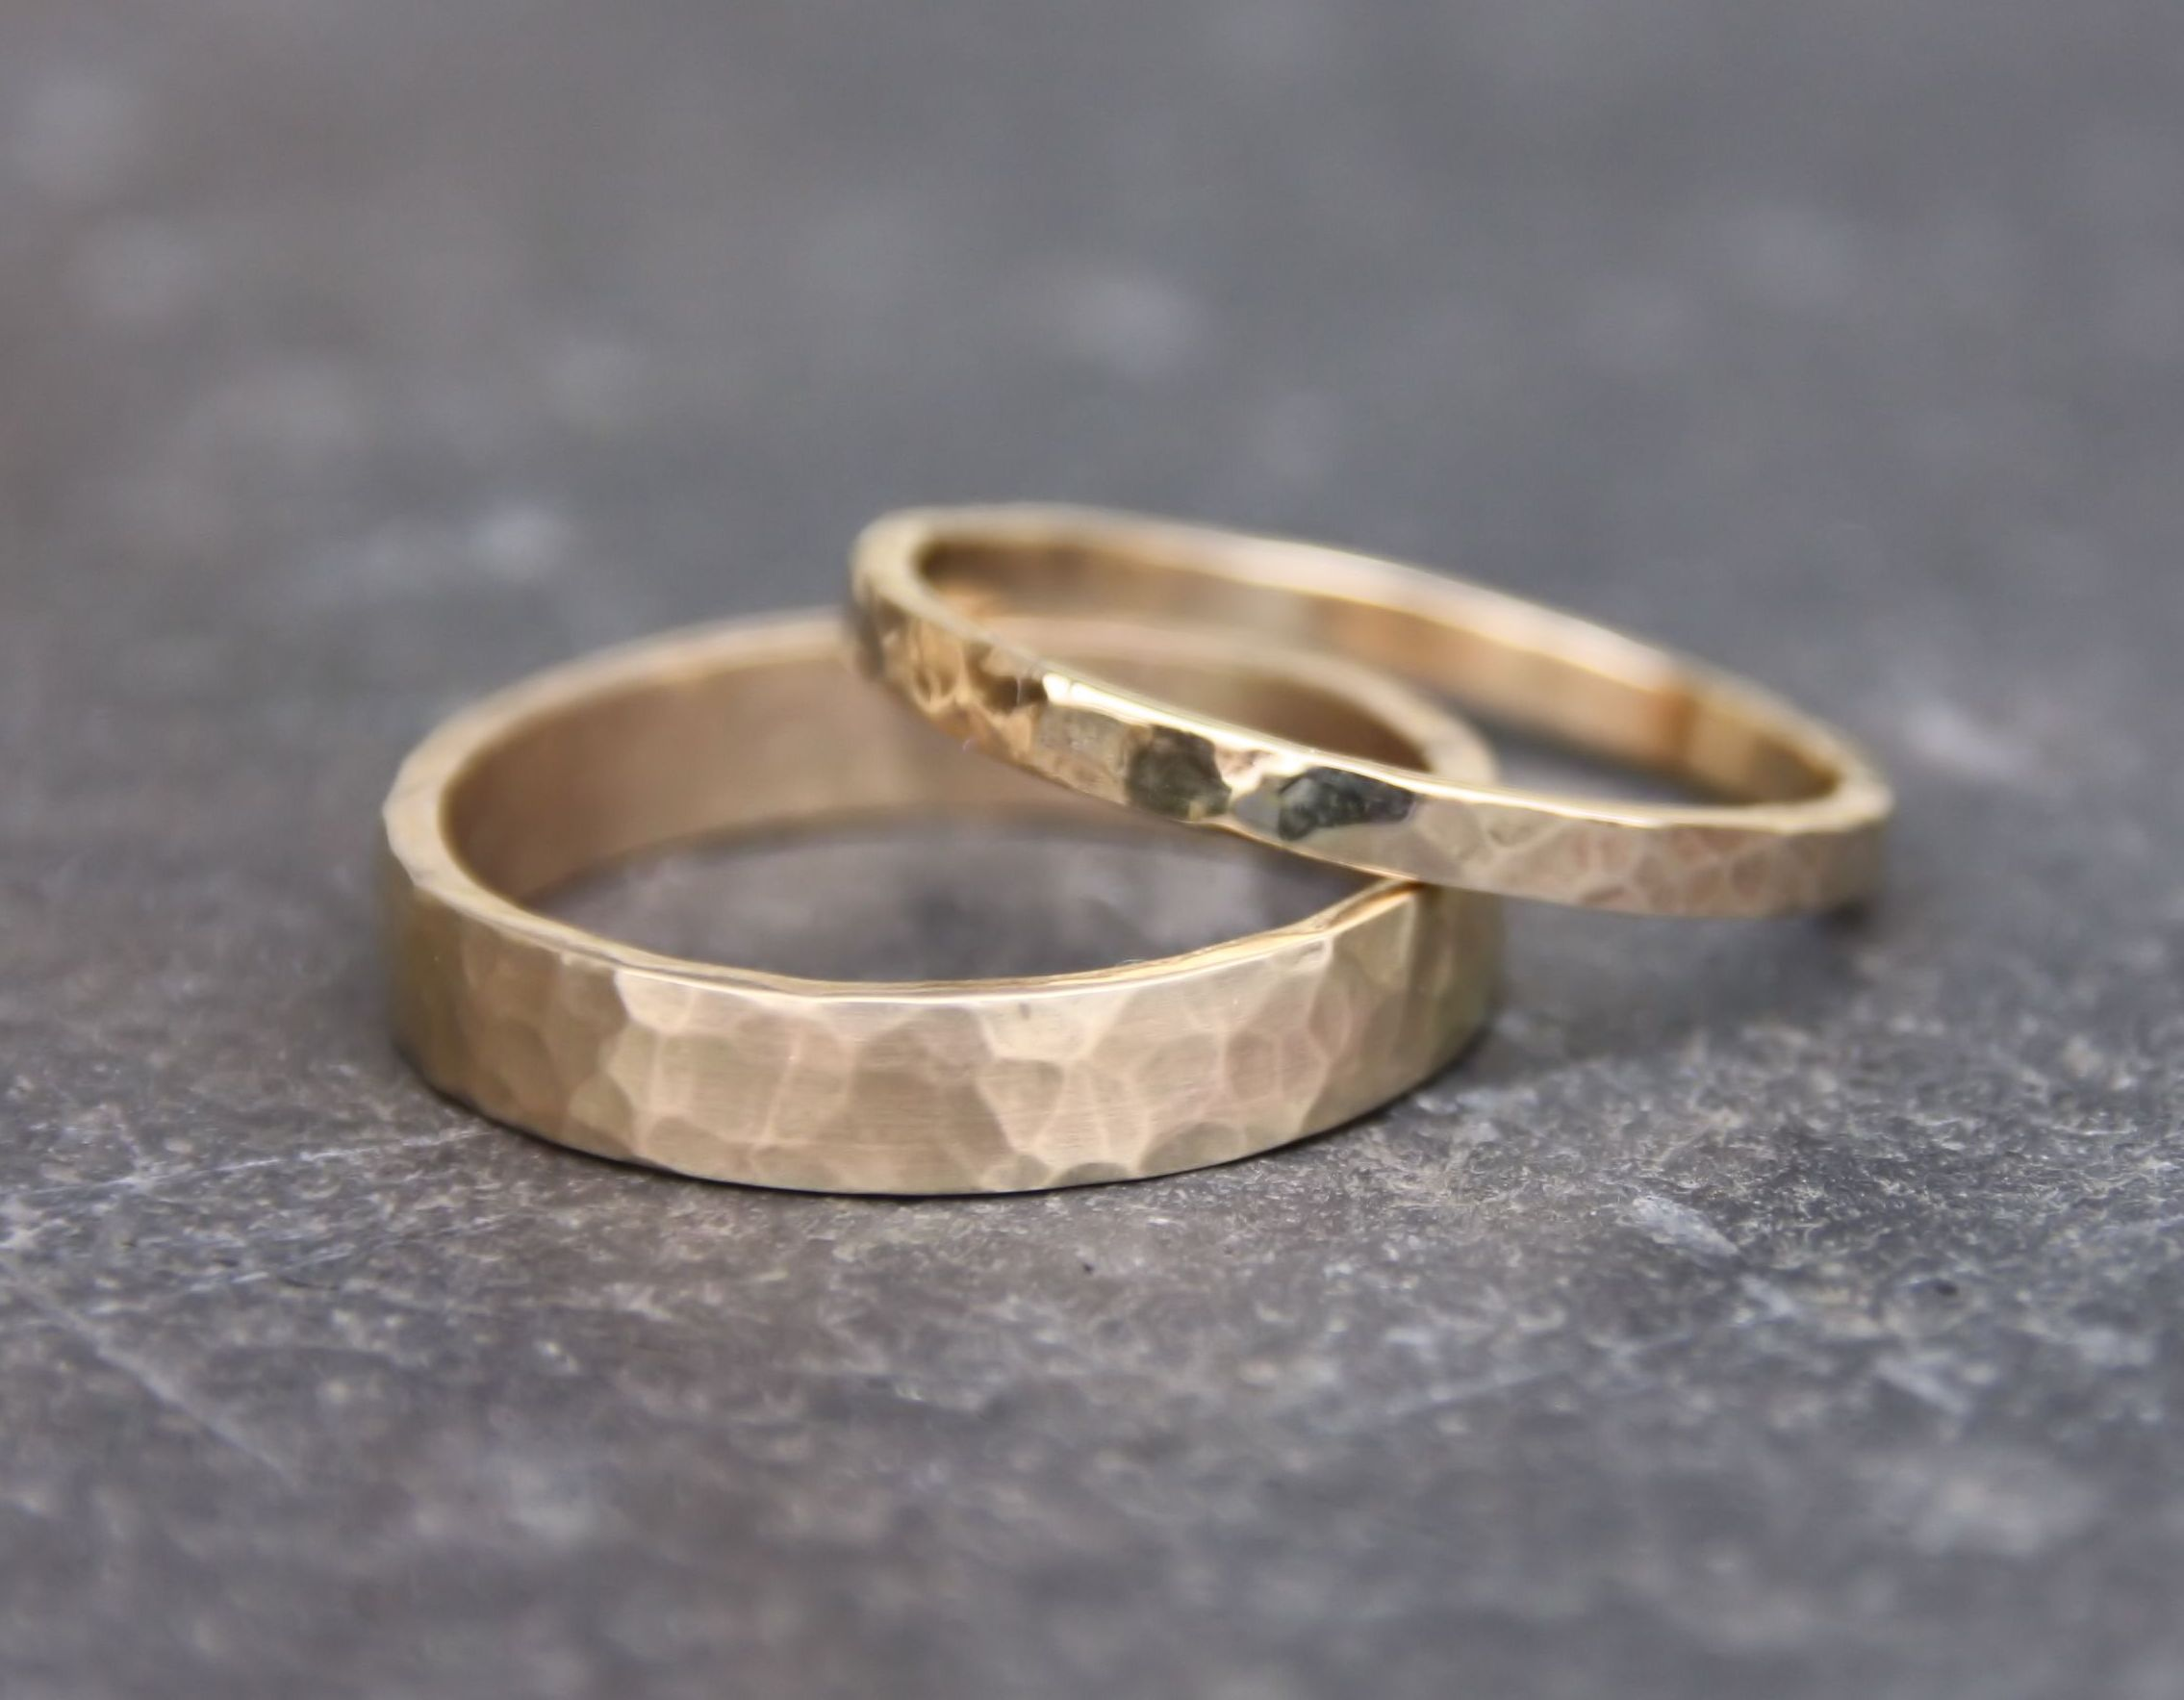 original by bands ring wedding arabel arabellebrusan band product gold lebrusan flat thin fairtrade harmony